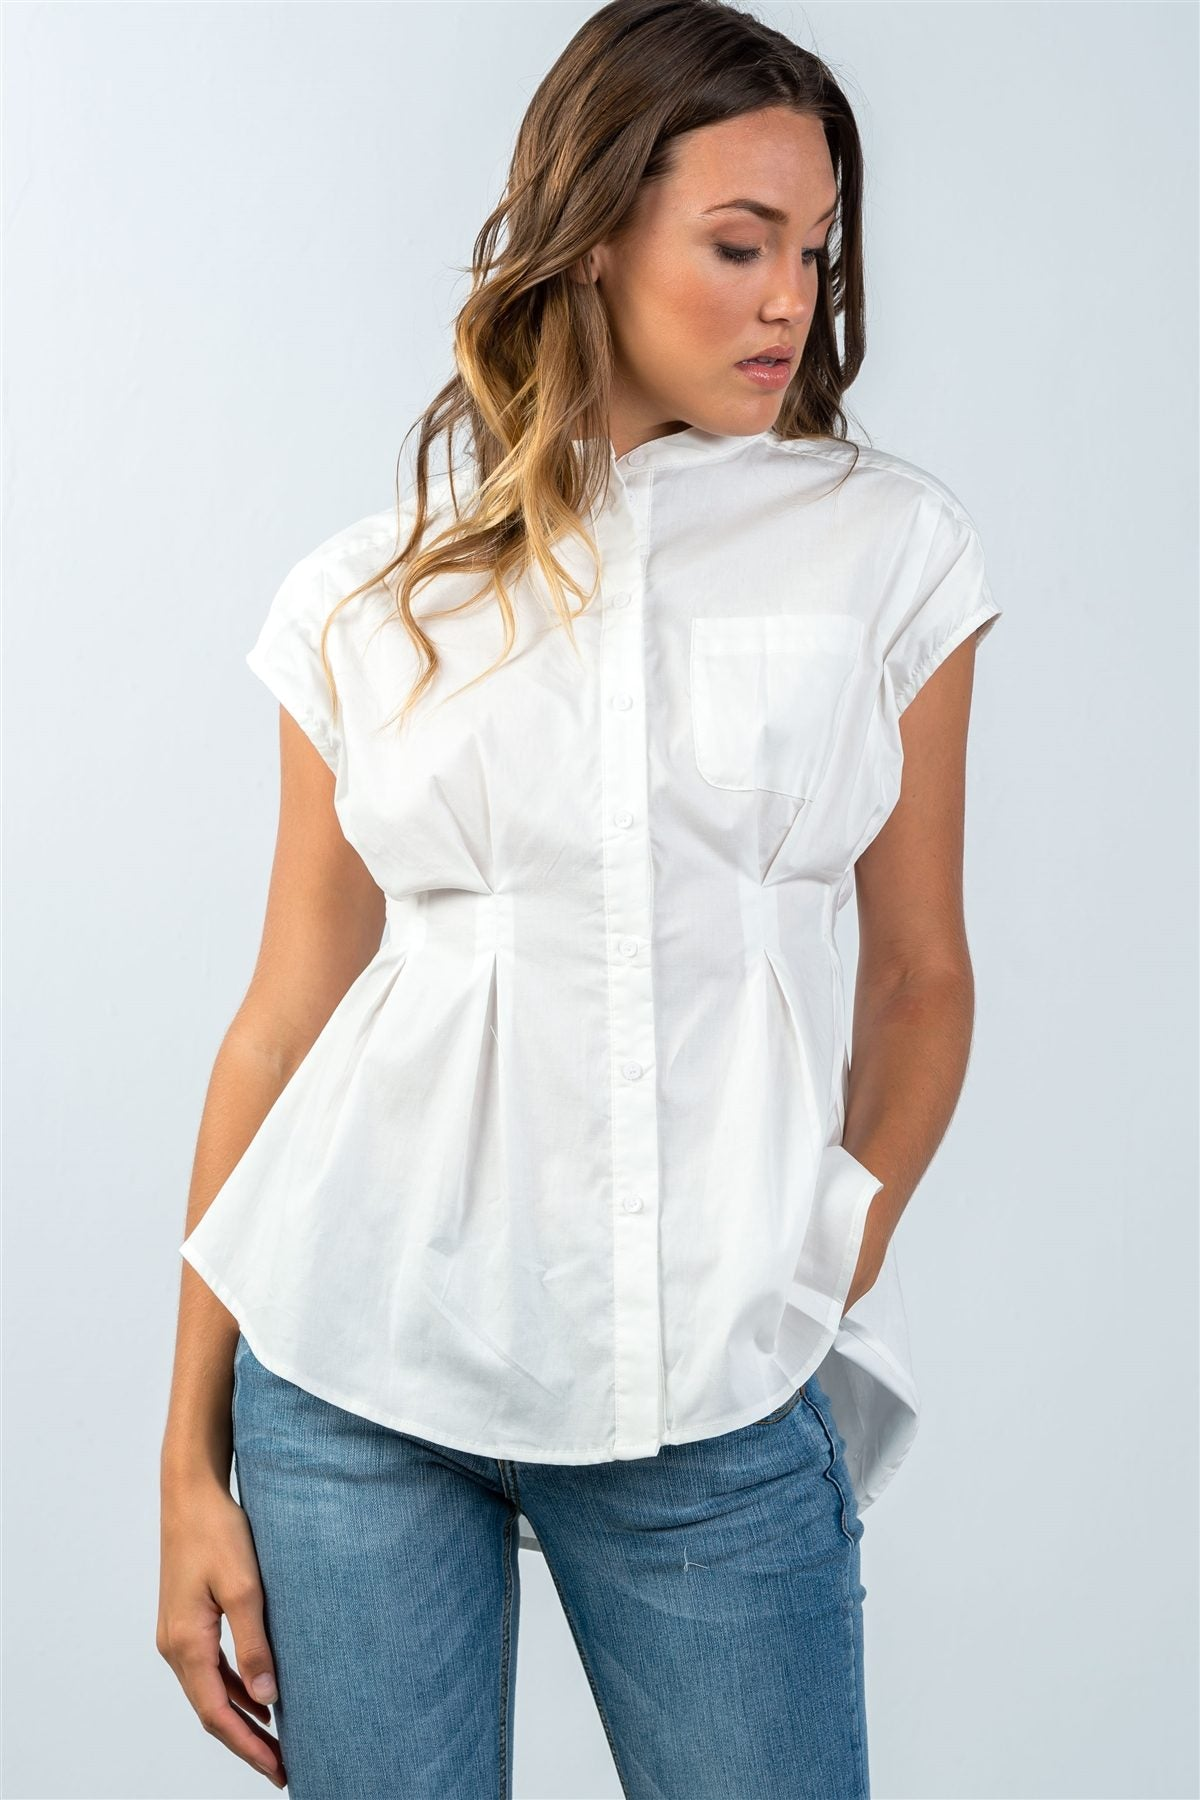 Ladies fashion round neckline white one pocket cap sleeve blouse